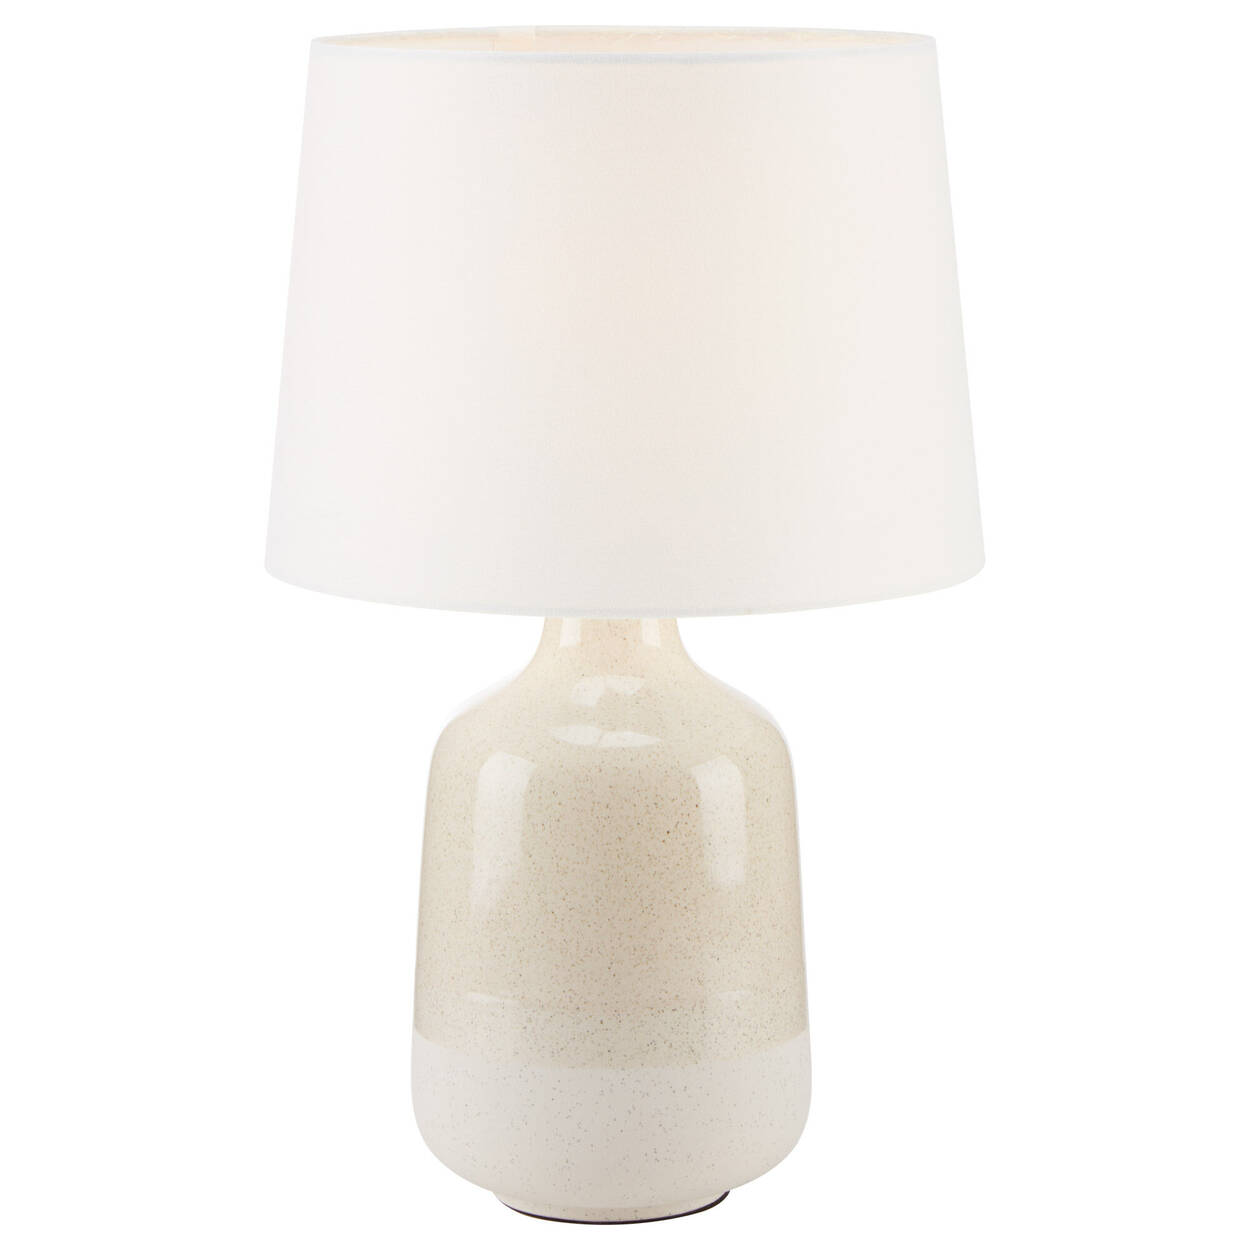 Glossed Ceramic Table Lamp